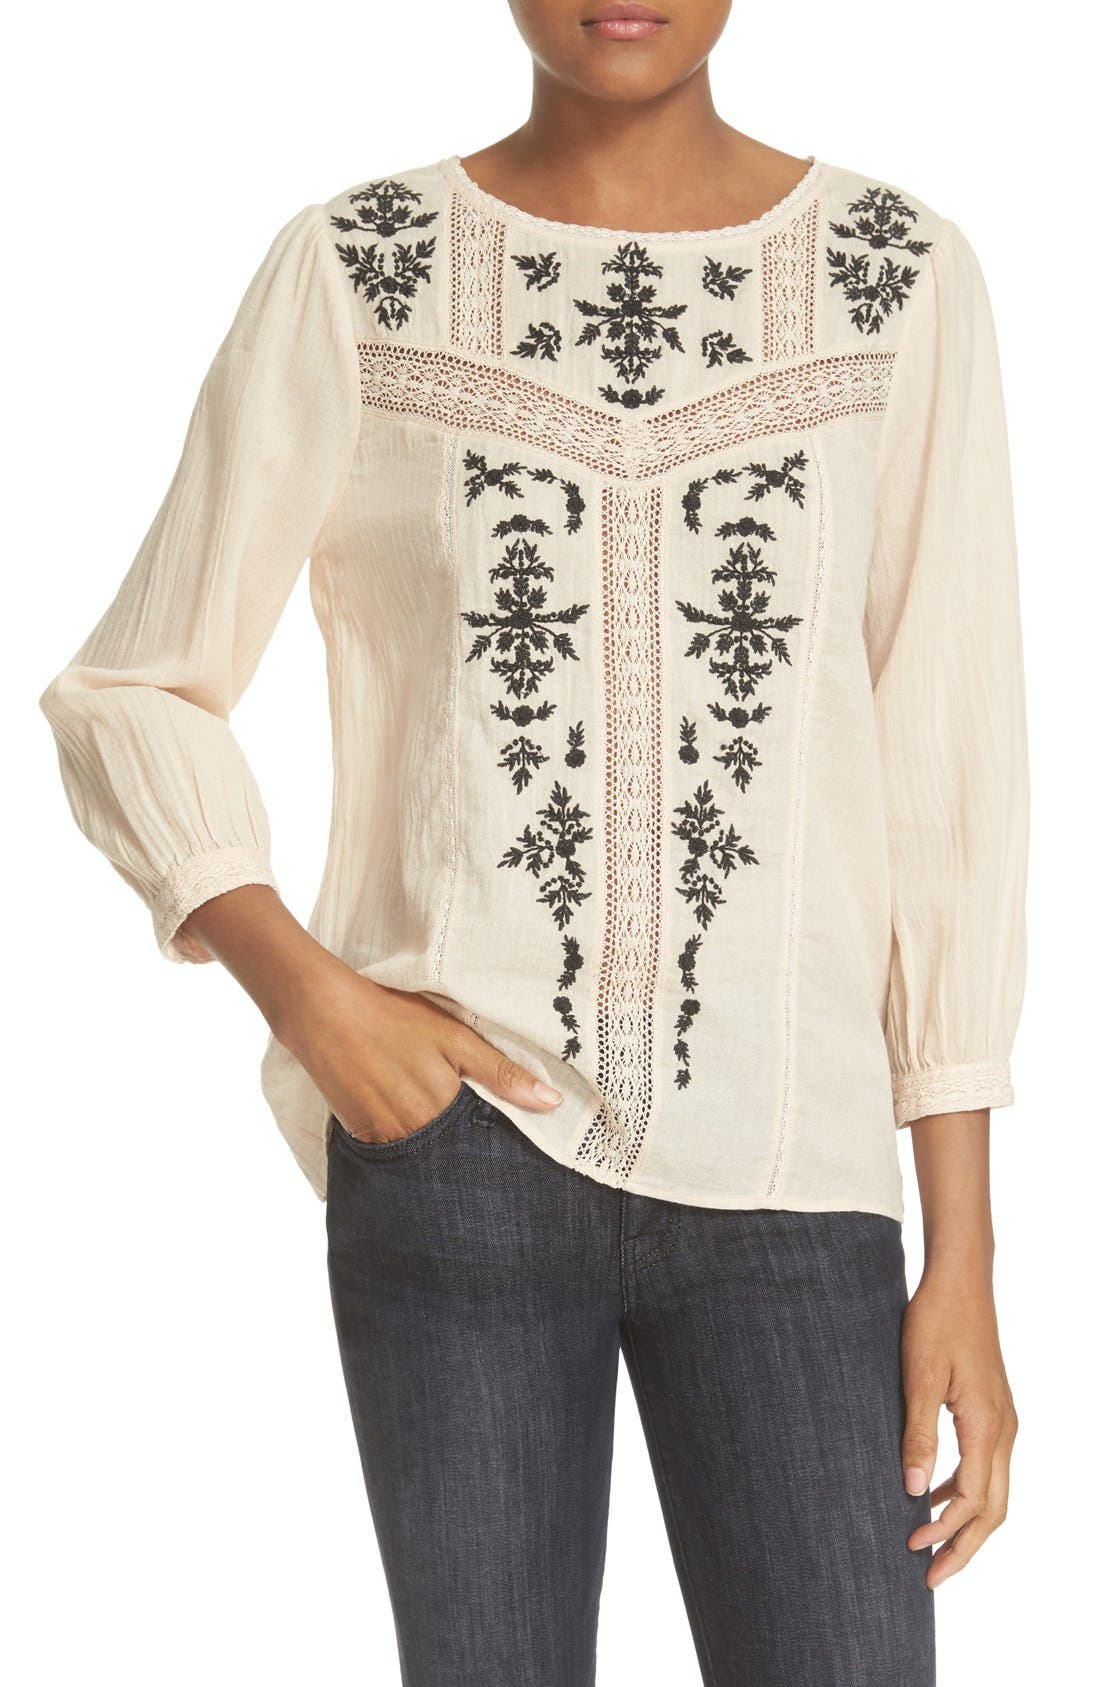 Alternate Image 1 Selected - Joie 'Oakes' Embroidered Cotton Blouse